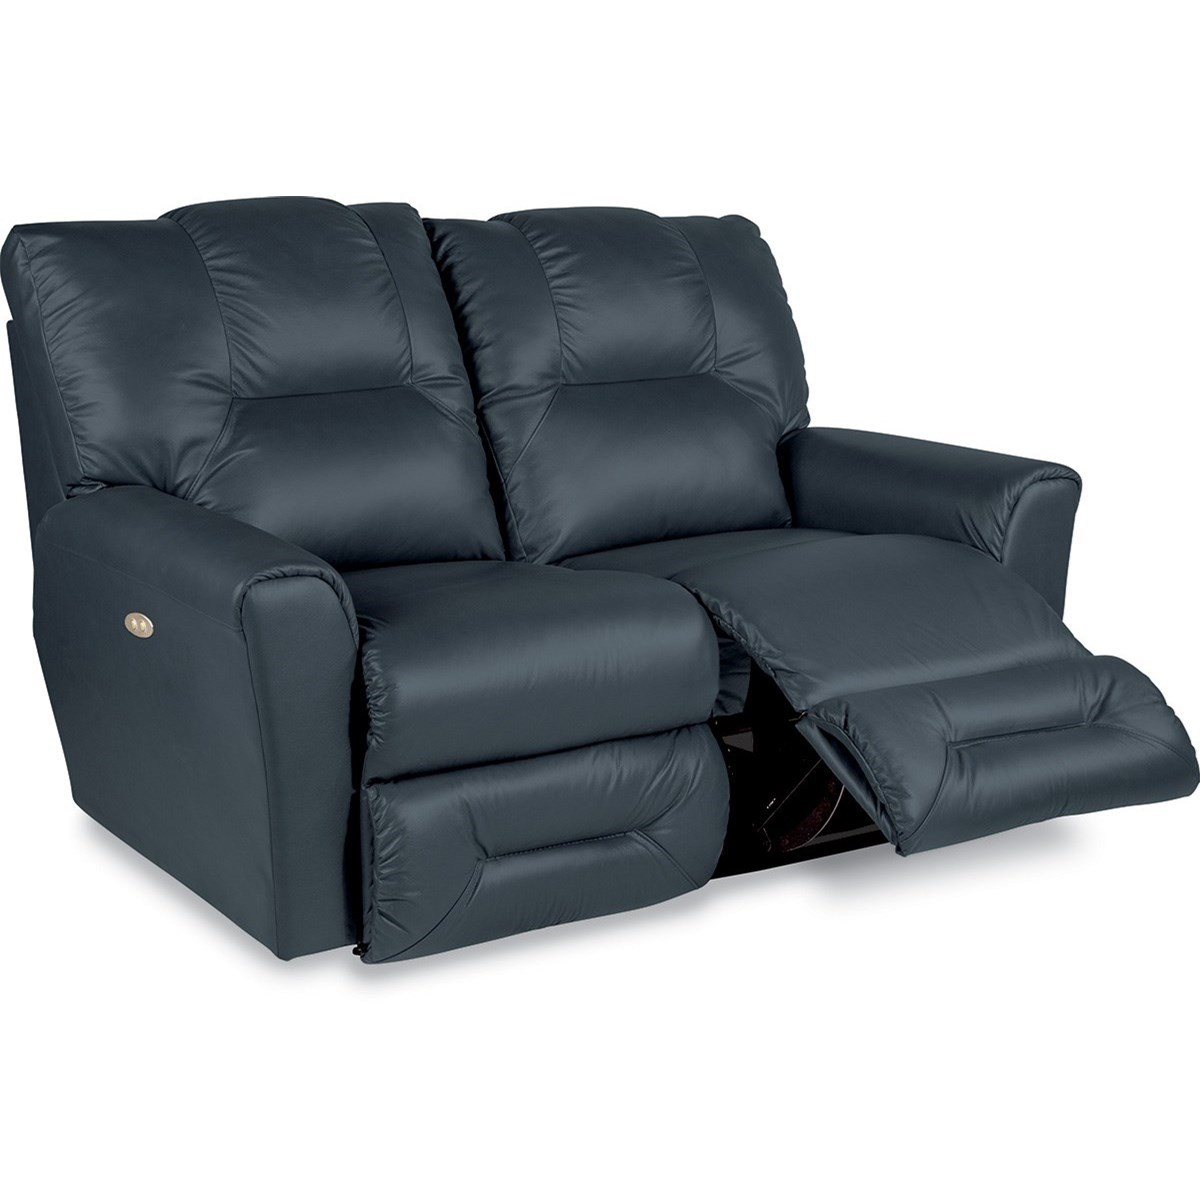 Casual La-Z-Time Full Reclining Loveseat with Power